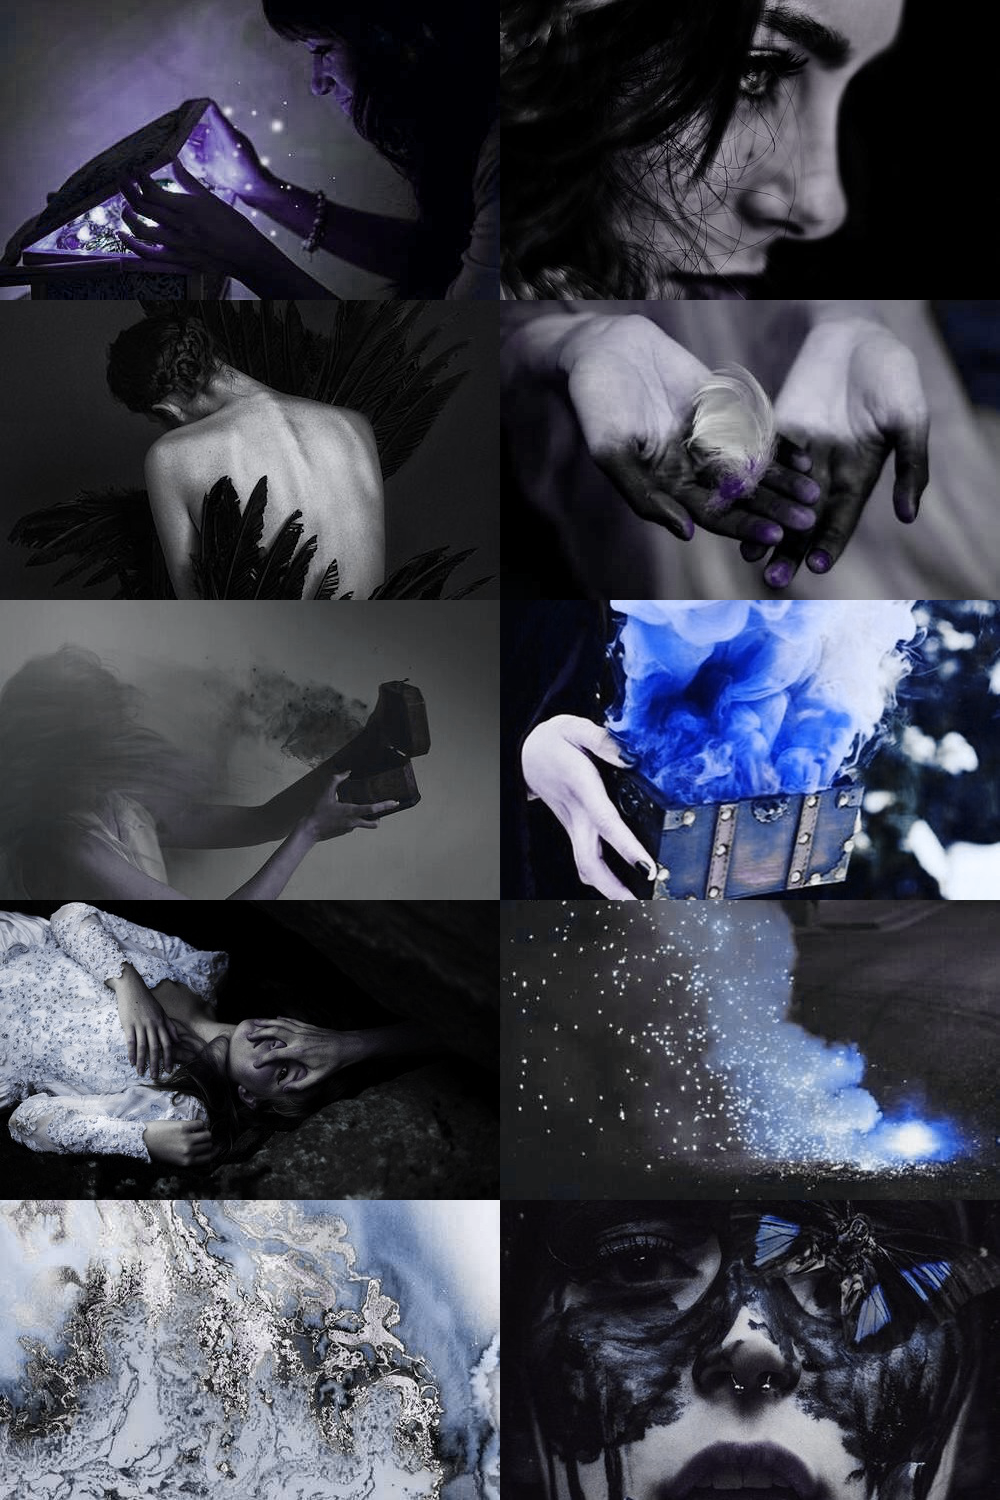 skcgsra pandora s box aesthetic more here moodboards skcgsra pandora s box aesthetic more here